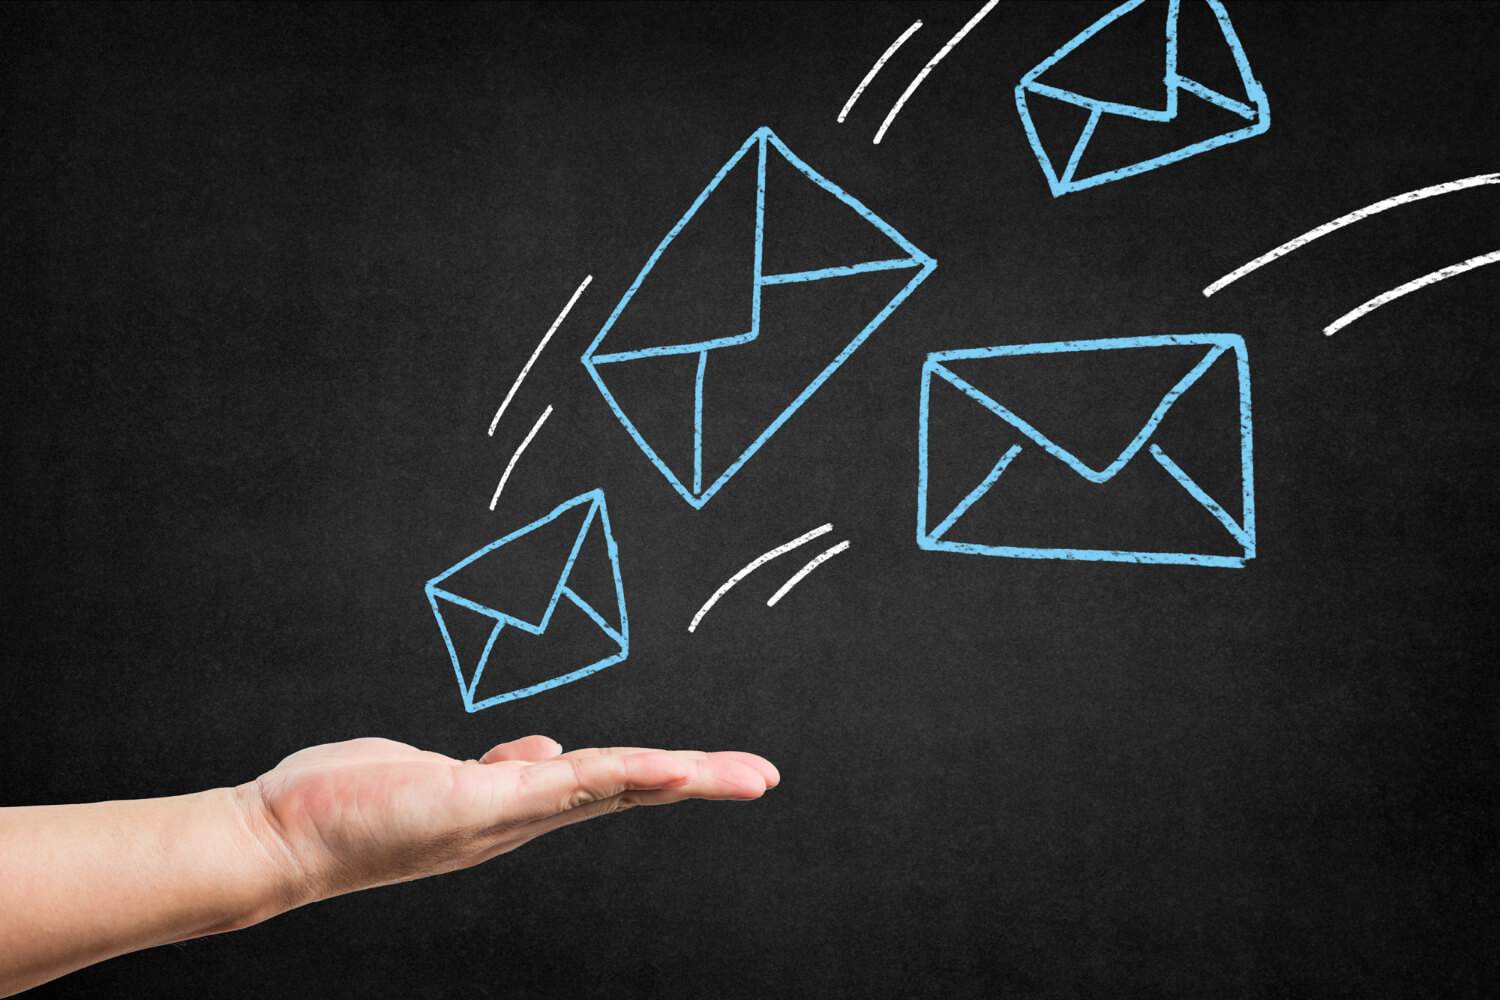 Cold emails can be a cost-effective way to generate new leads, and, if done right, can be the underlying strategy for a very successful B2B outreach campaign.